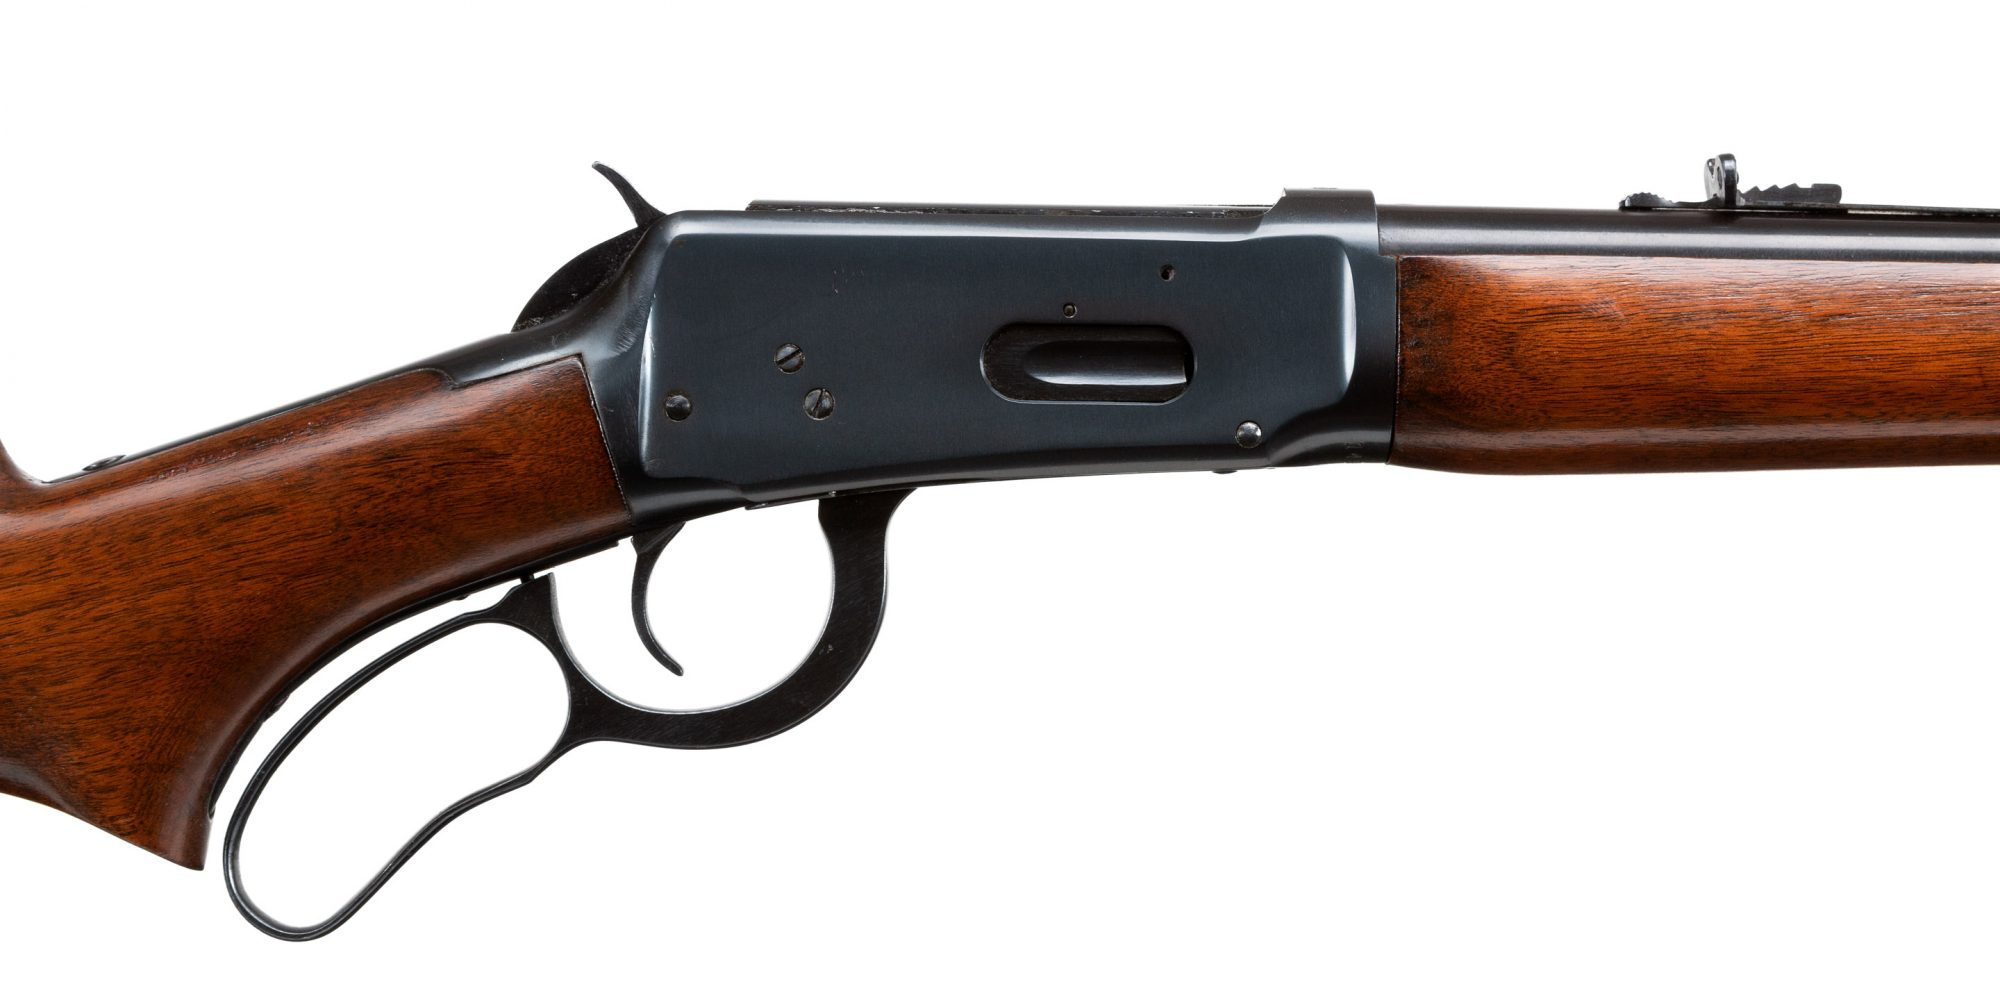 Photo of a used Winchester Model 64, sold as-is through Turnbull Restoration